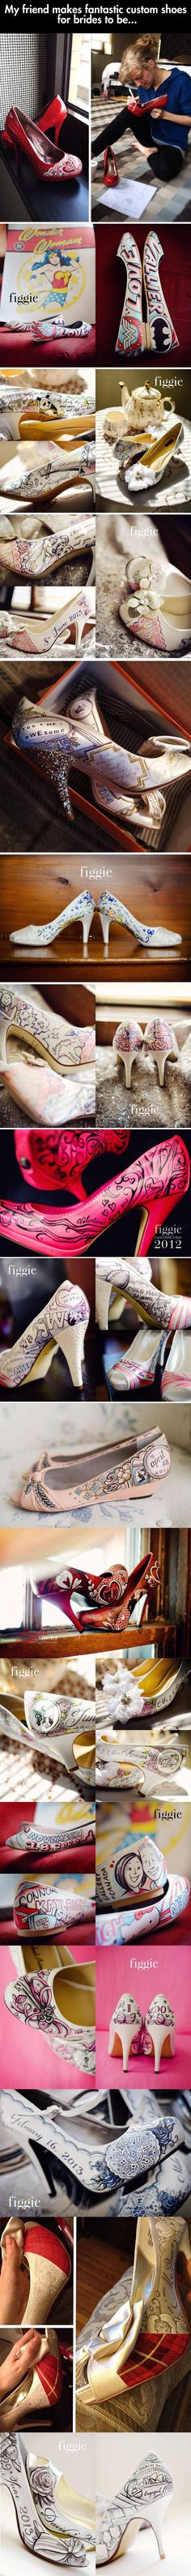 Stunning Customized Shoes.  I love this idea and wish it was around when I got married...*sigh*